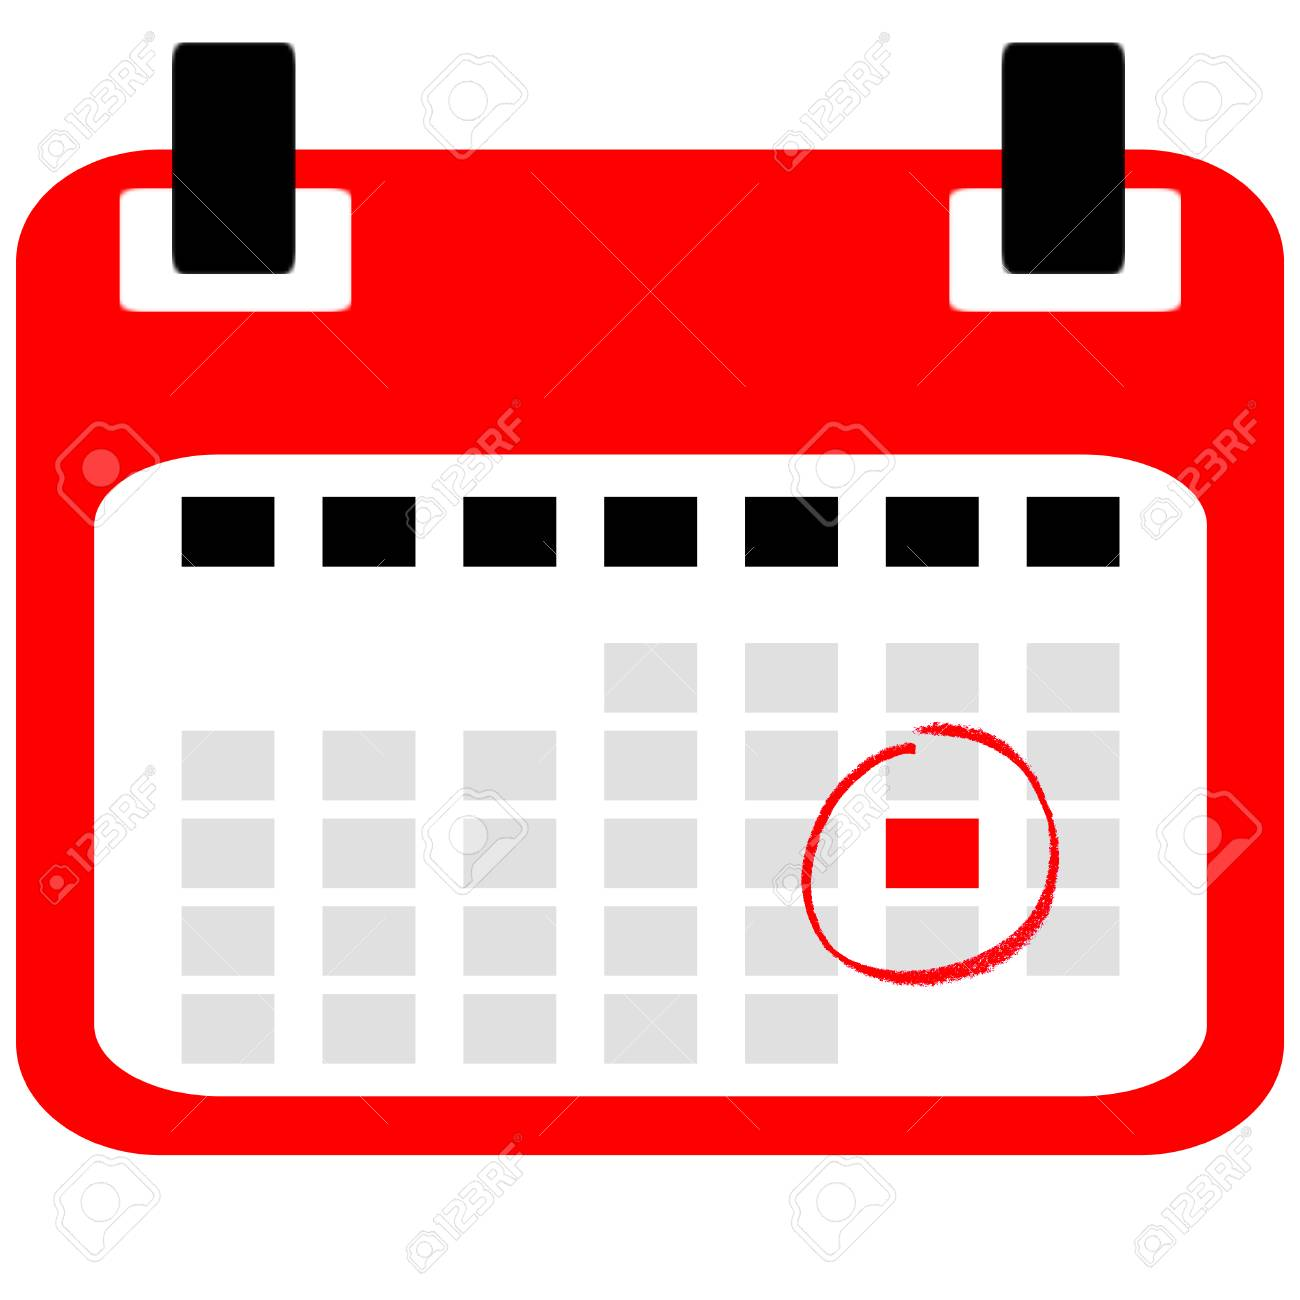 red isolated calender icon with save the date reminder stock photo